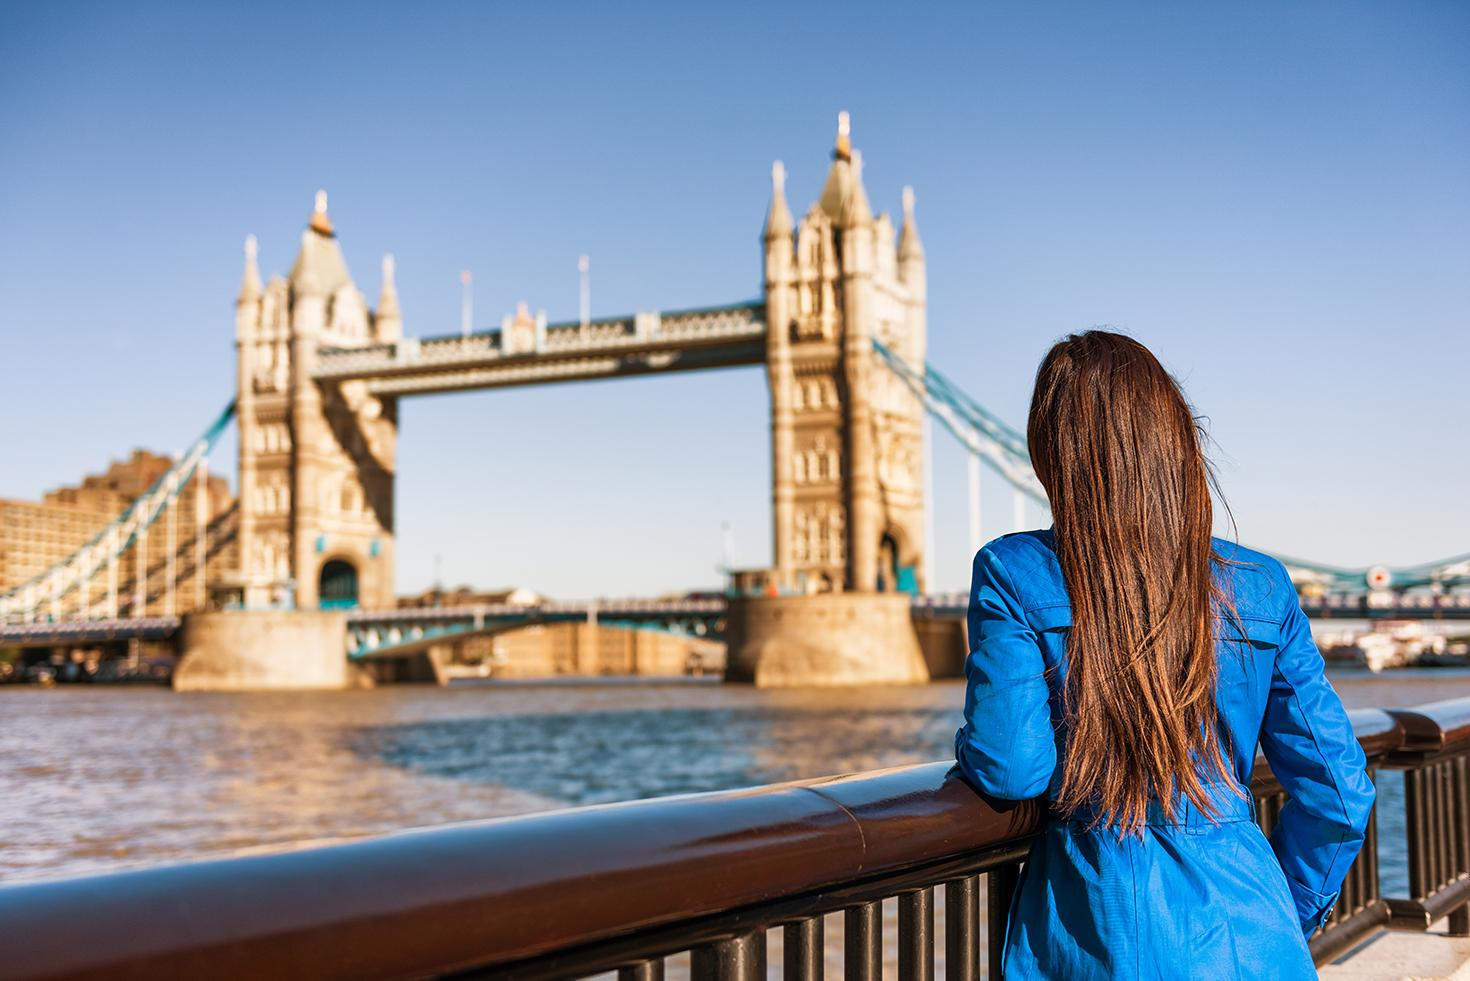 Stroll by classic sights like the London Bridge with England tours and excursions